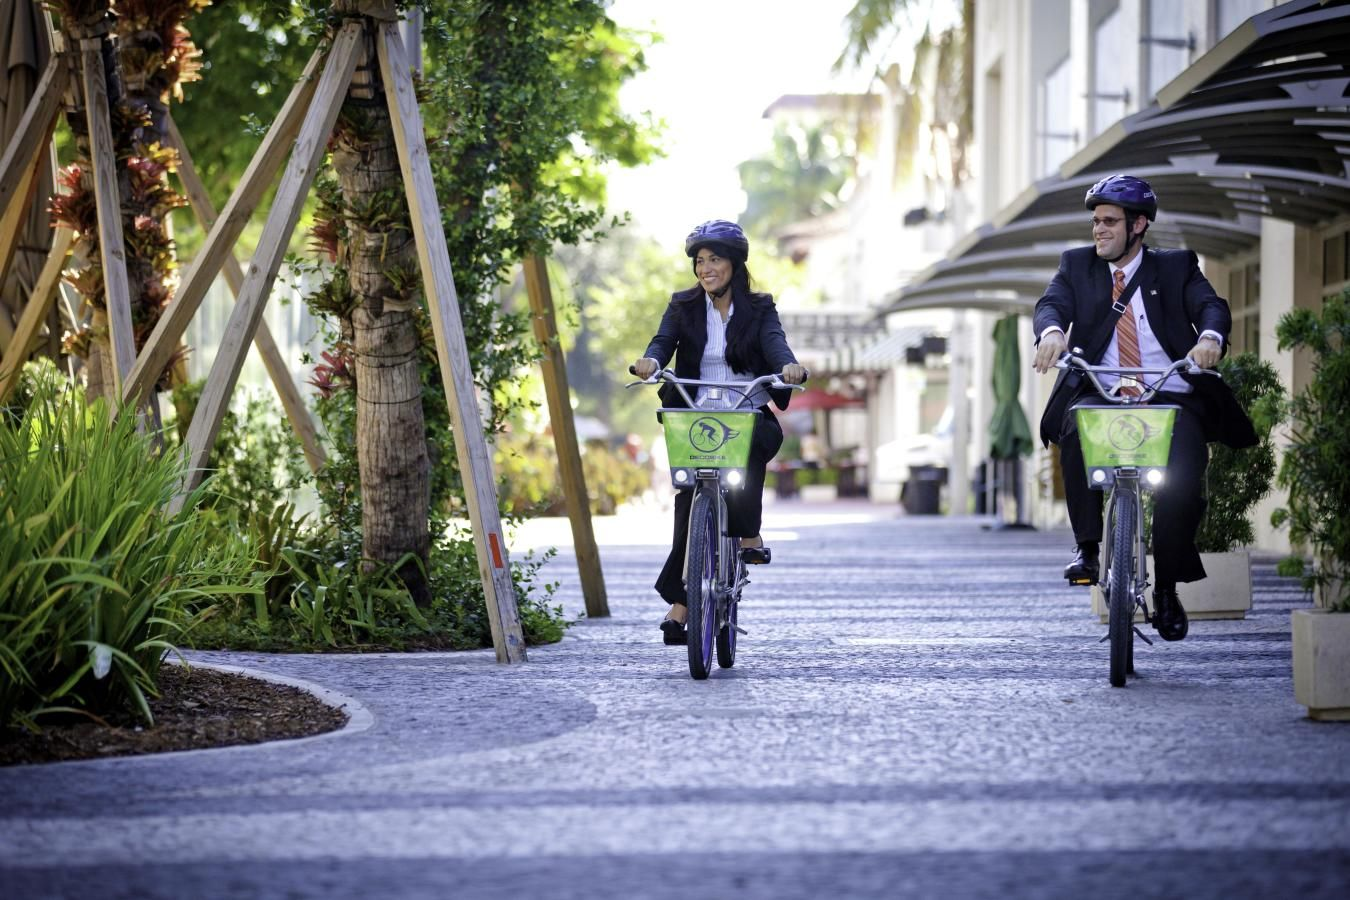 Work or play - DecoBike takes you wherever you need to go!